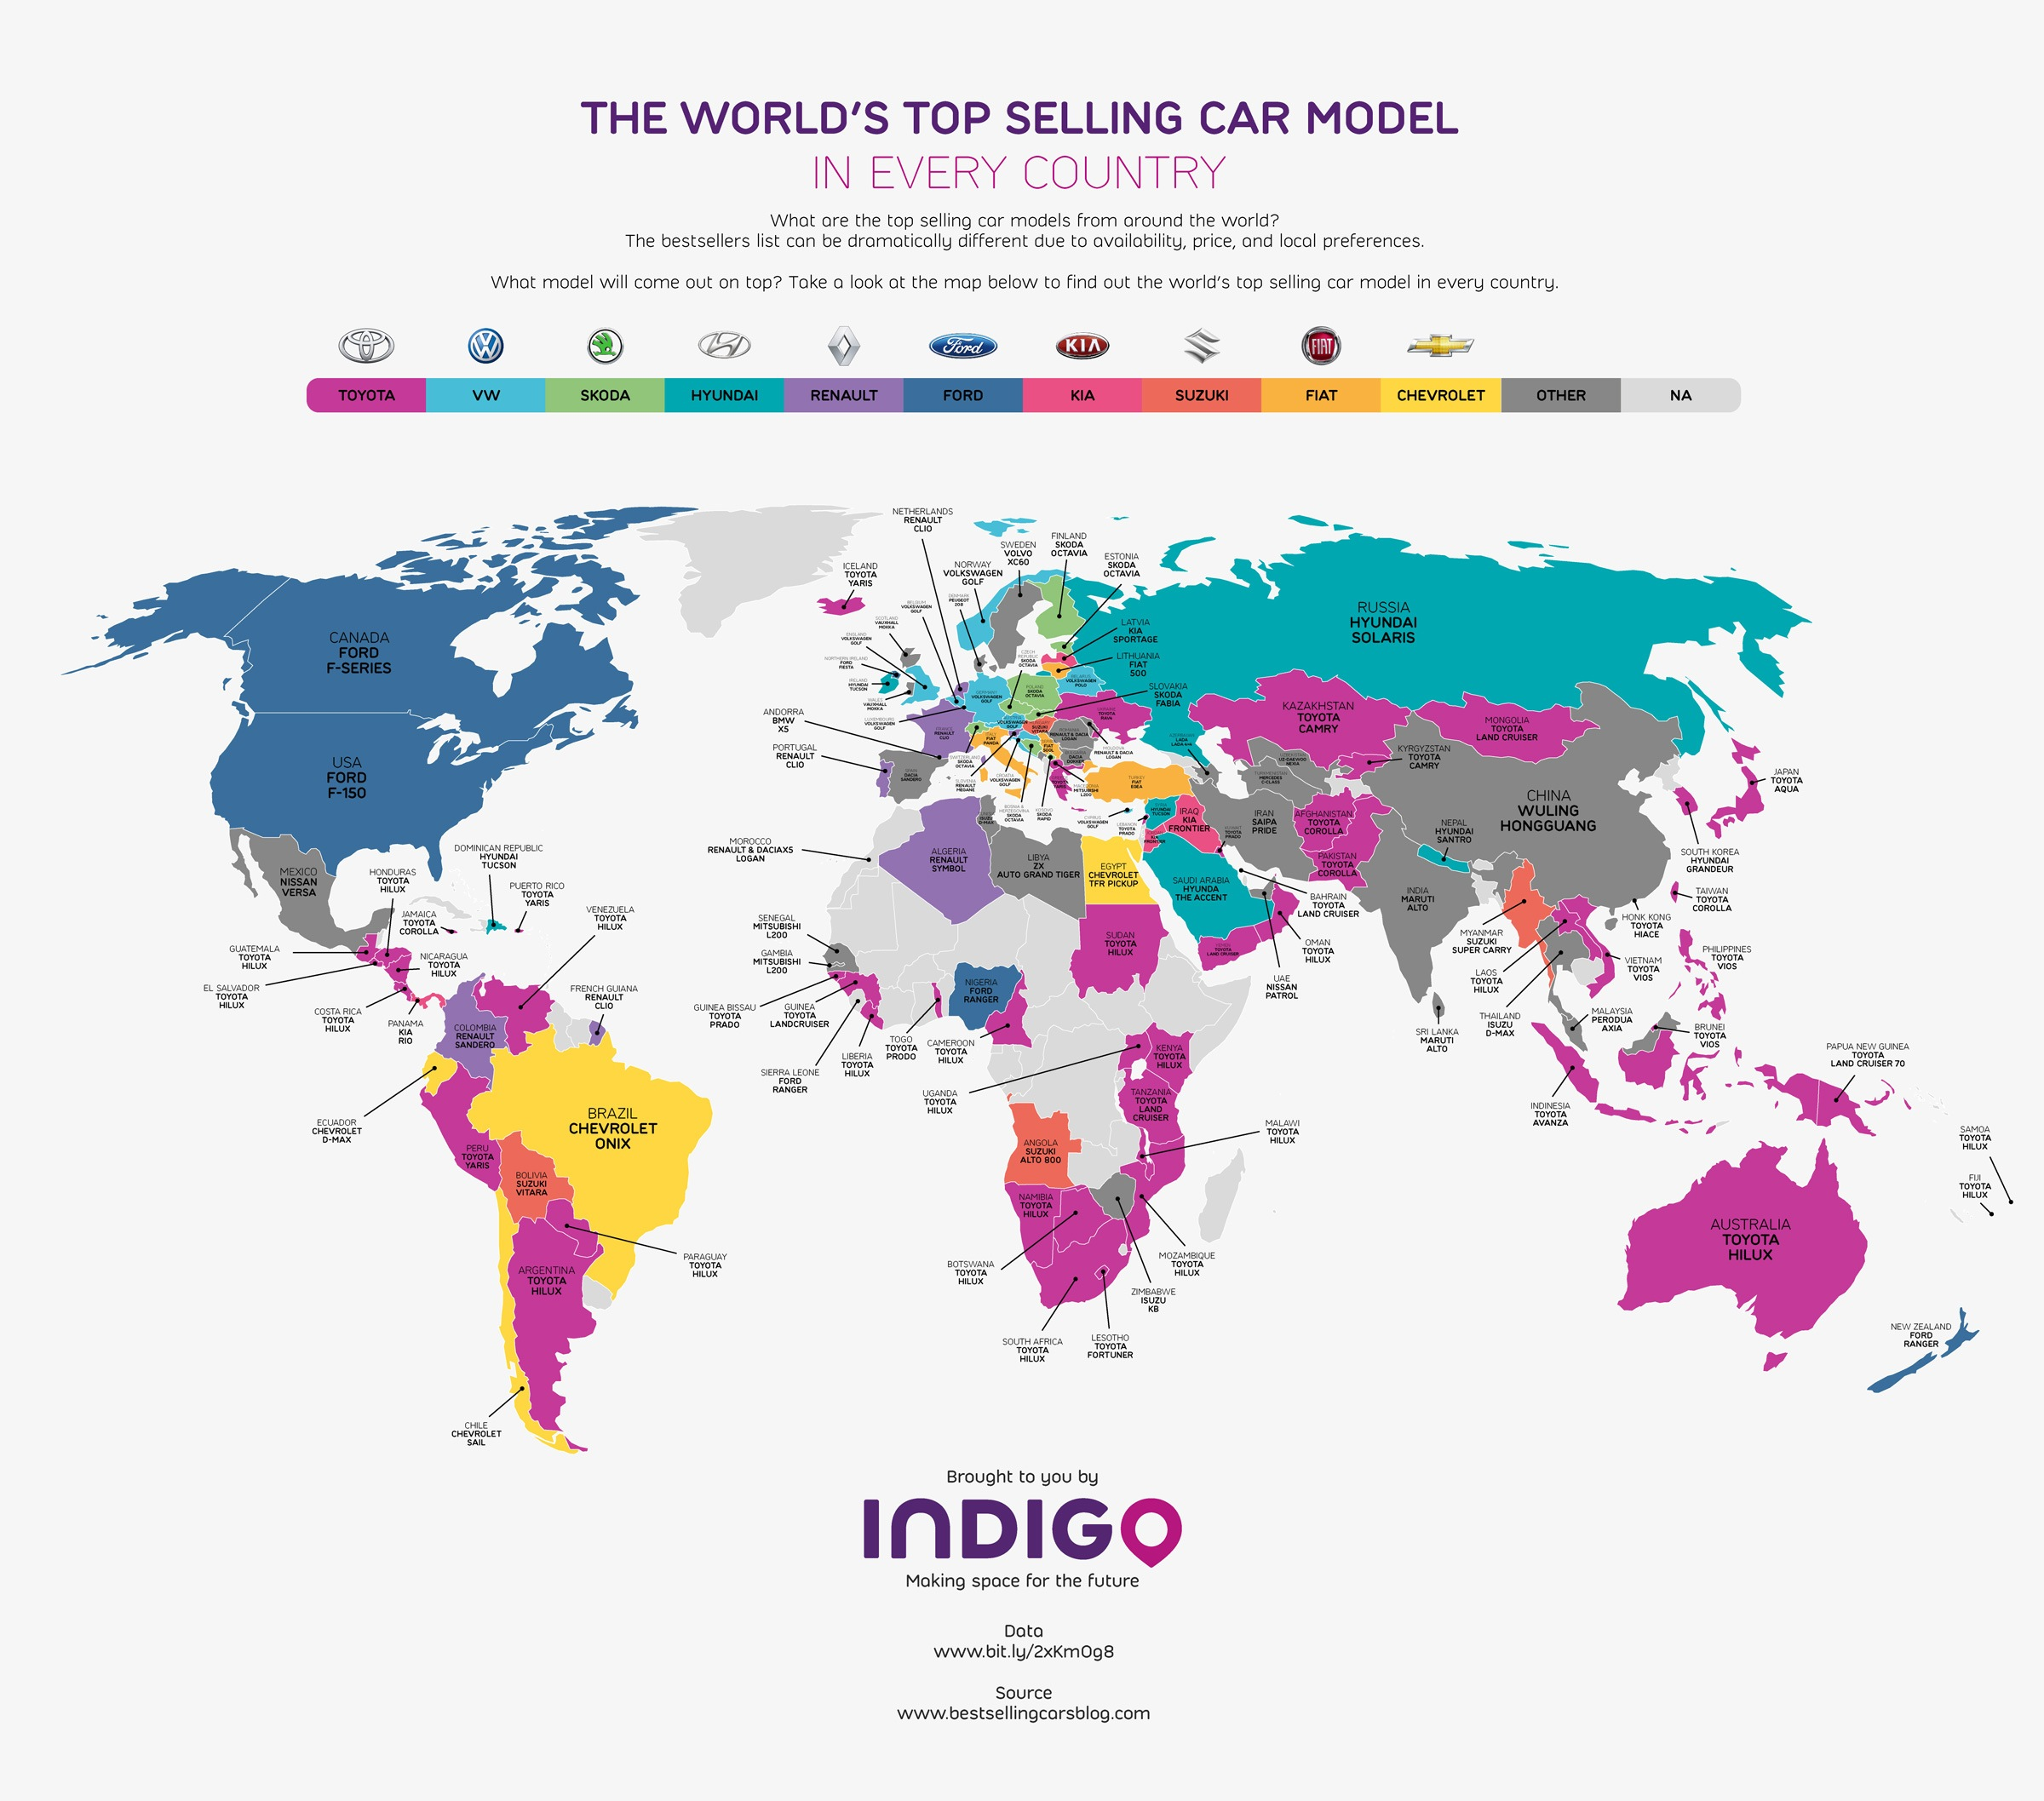 This map will show you the most popular cars in every country this map created by indigo paints an interesting picture of the worlds top selling car models by country gumiabroncs Choice Image